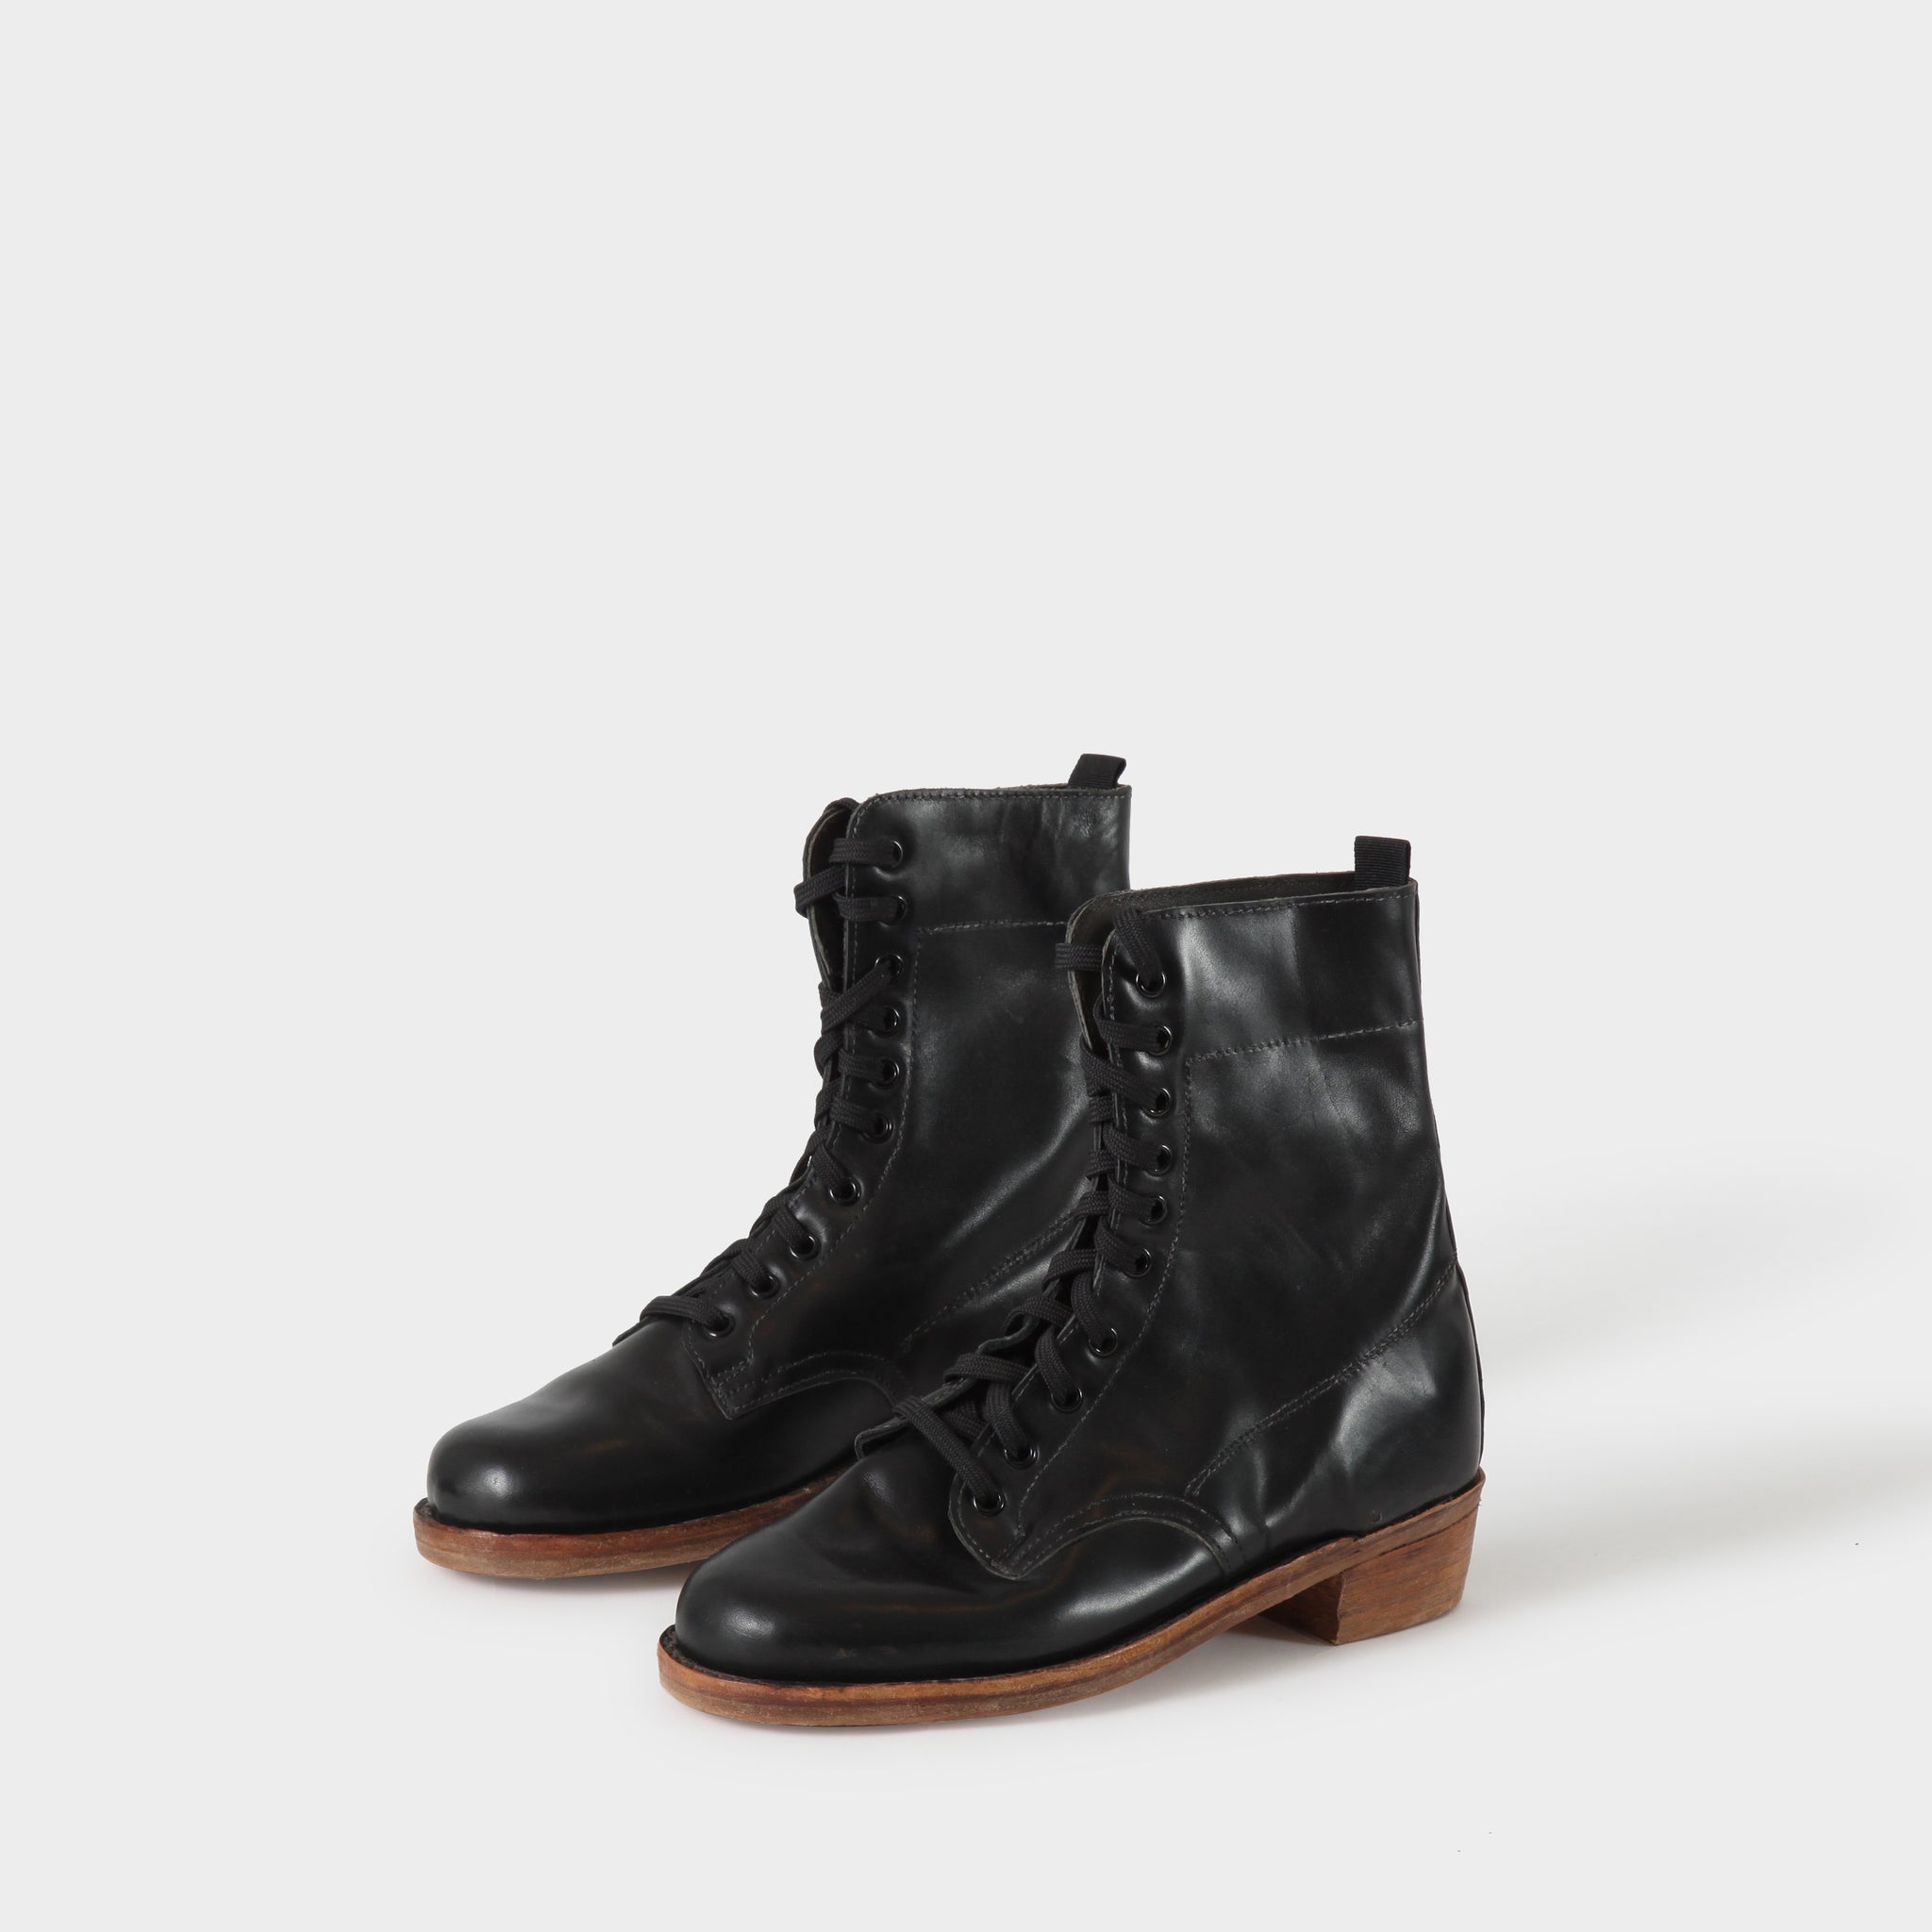 Geoffrey B Small Handmade Black Leather 10-hole Boots